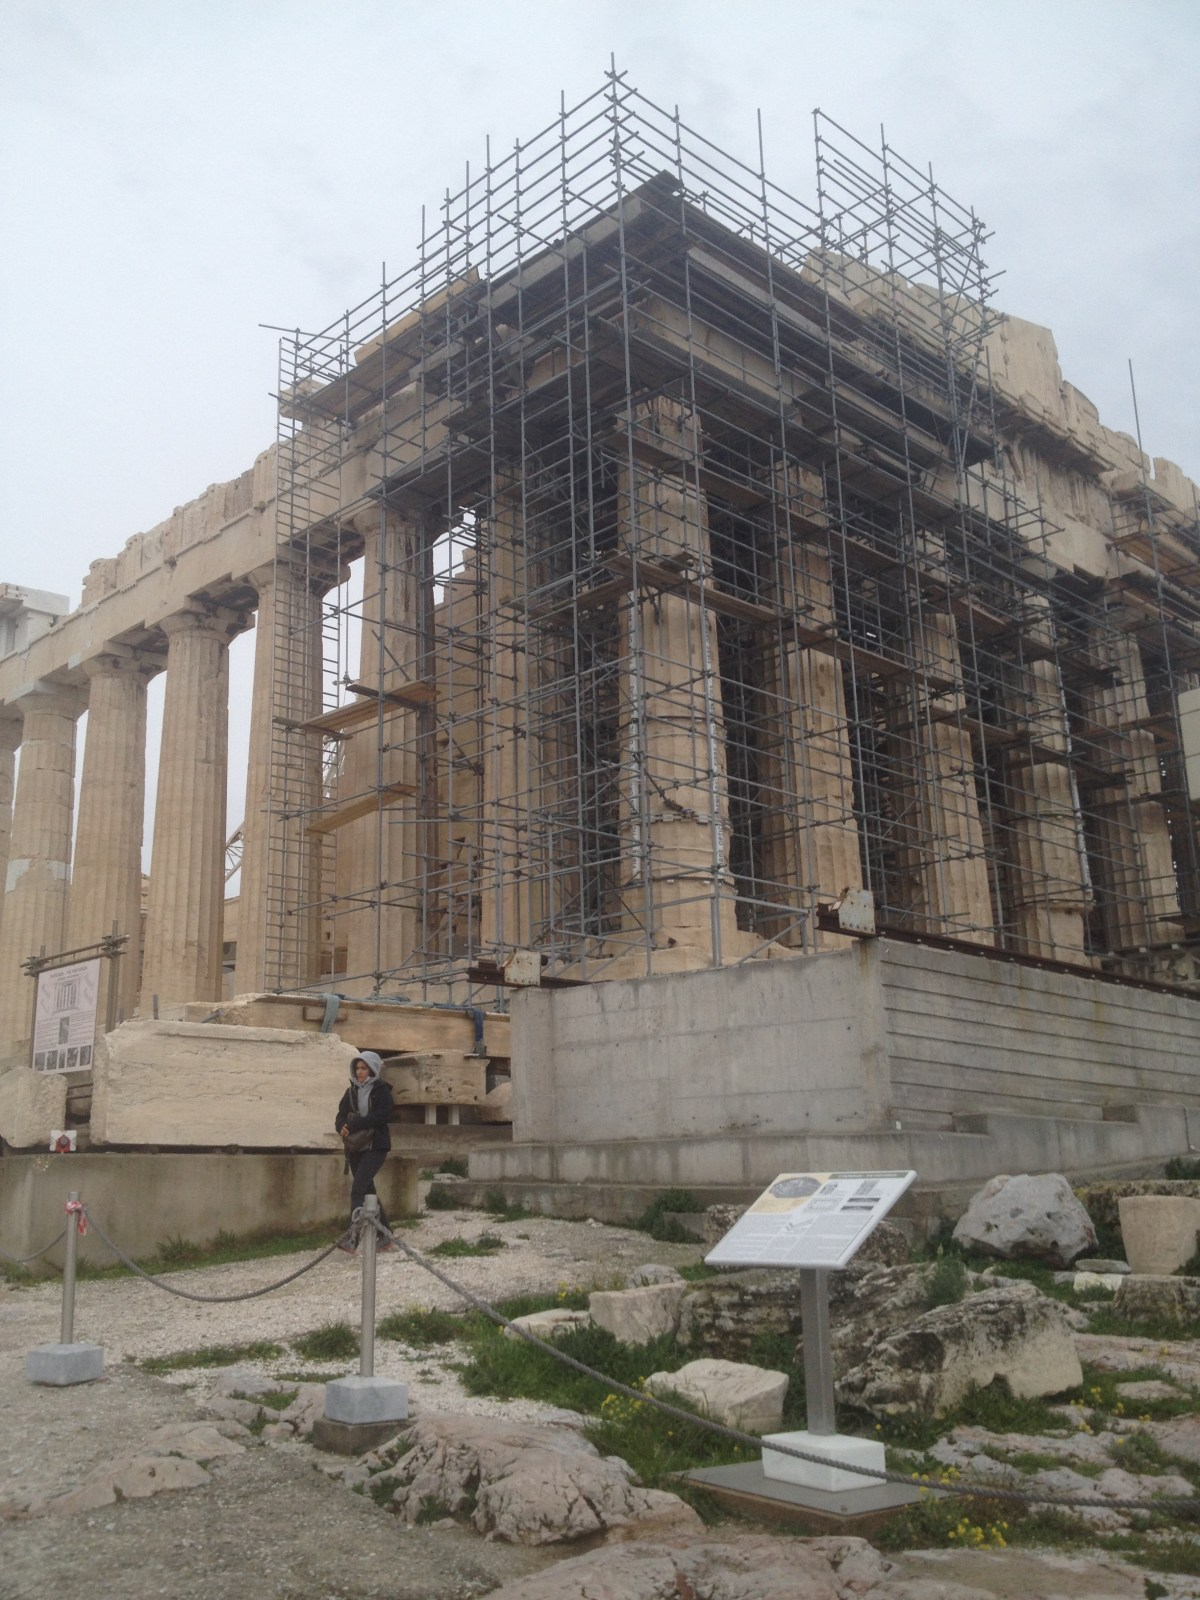 The Parthenon: Photo Gallery